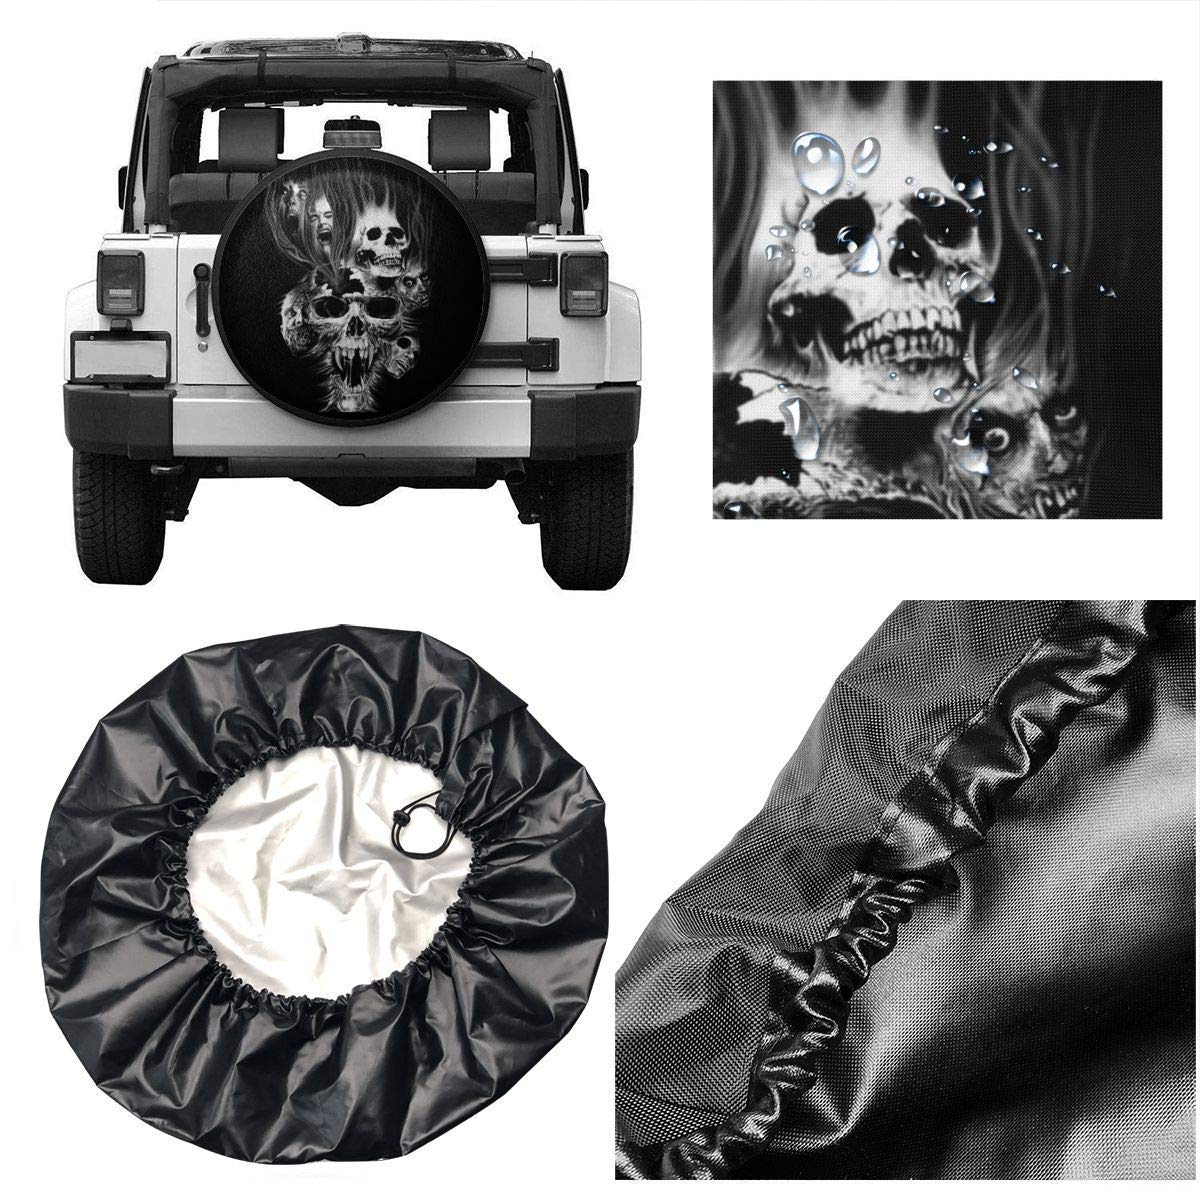 Ersatzradabdeckungen Spare Tire Cover for Trailer SUV Camper Travel Trailer Accessories Skull Water Proof Sunscreen Universal Spare Wheel Tire Cover Fit 14 15 16 17 DIY Tire Protective Cover